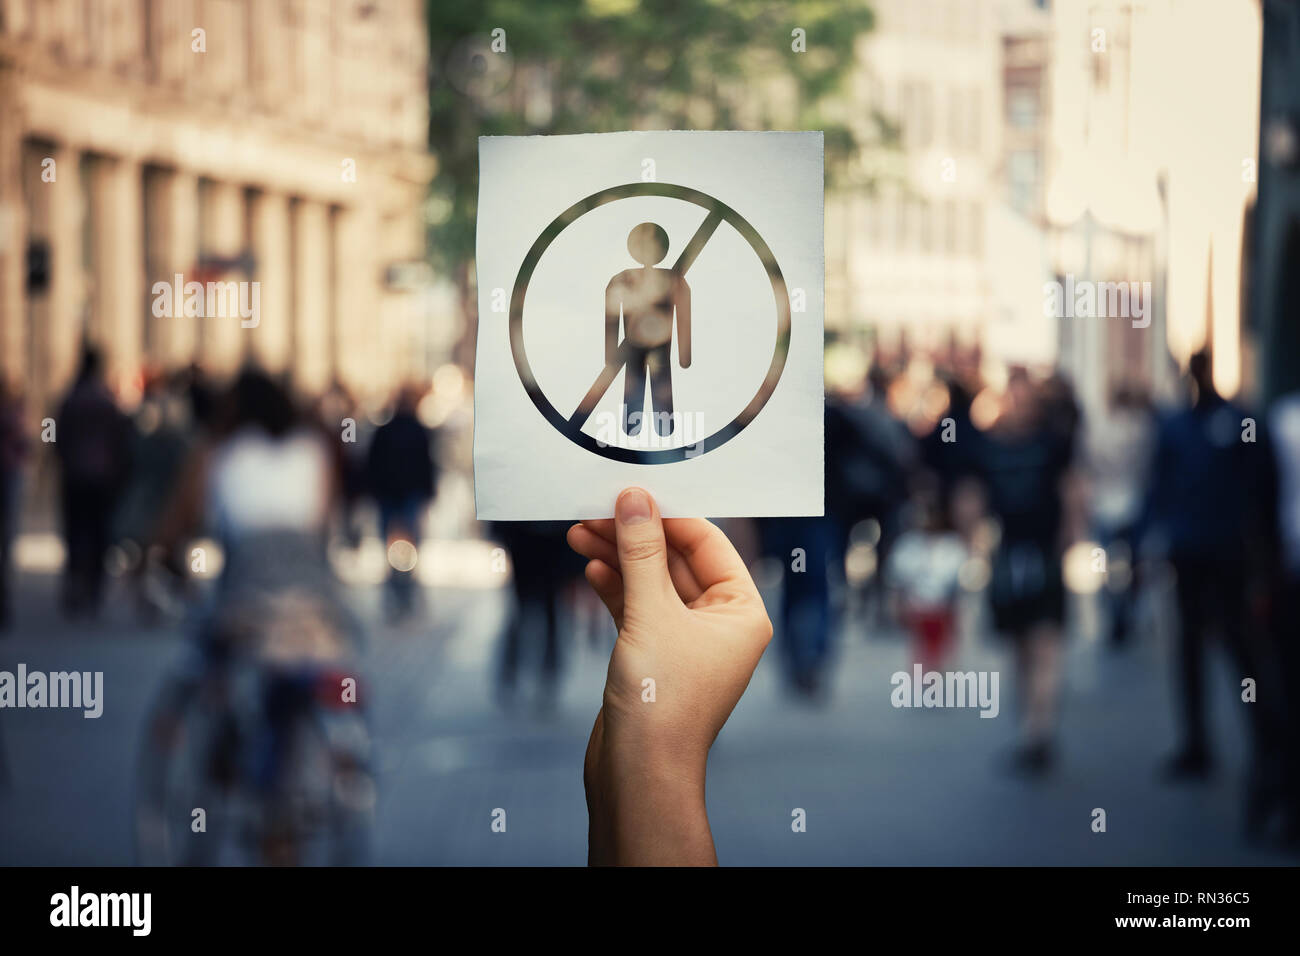 Unemployment global issue as hand holding a paper sheet with person employee icon over a crowded street background. Social problem, lack of economic o - Stock Image